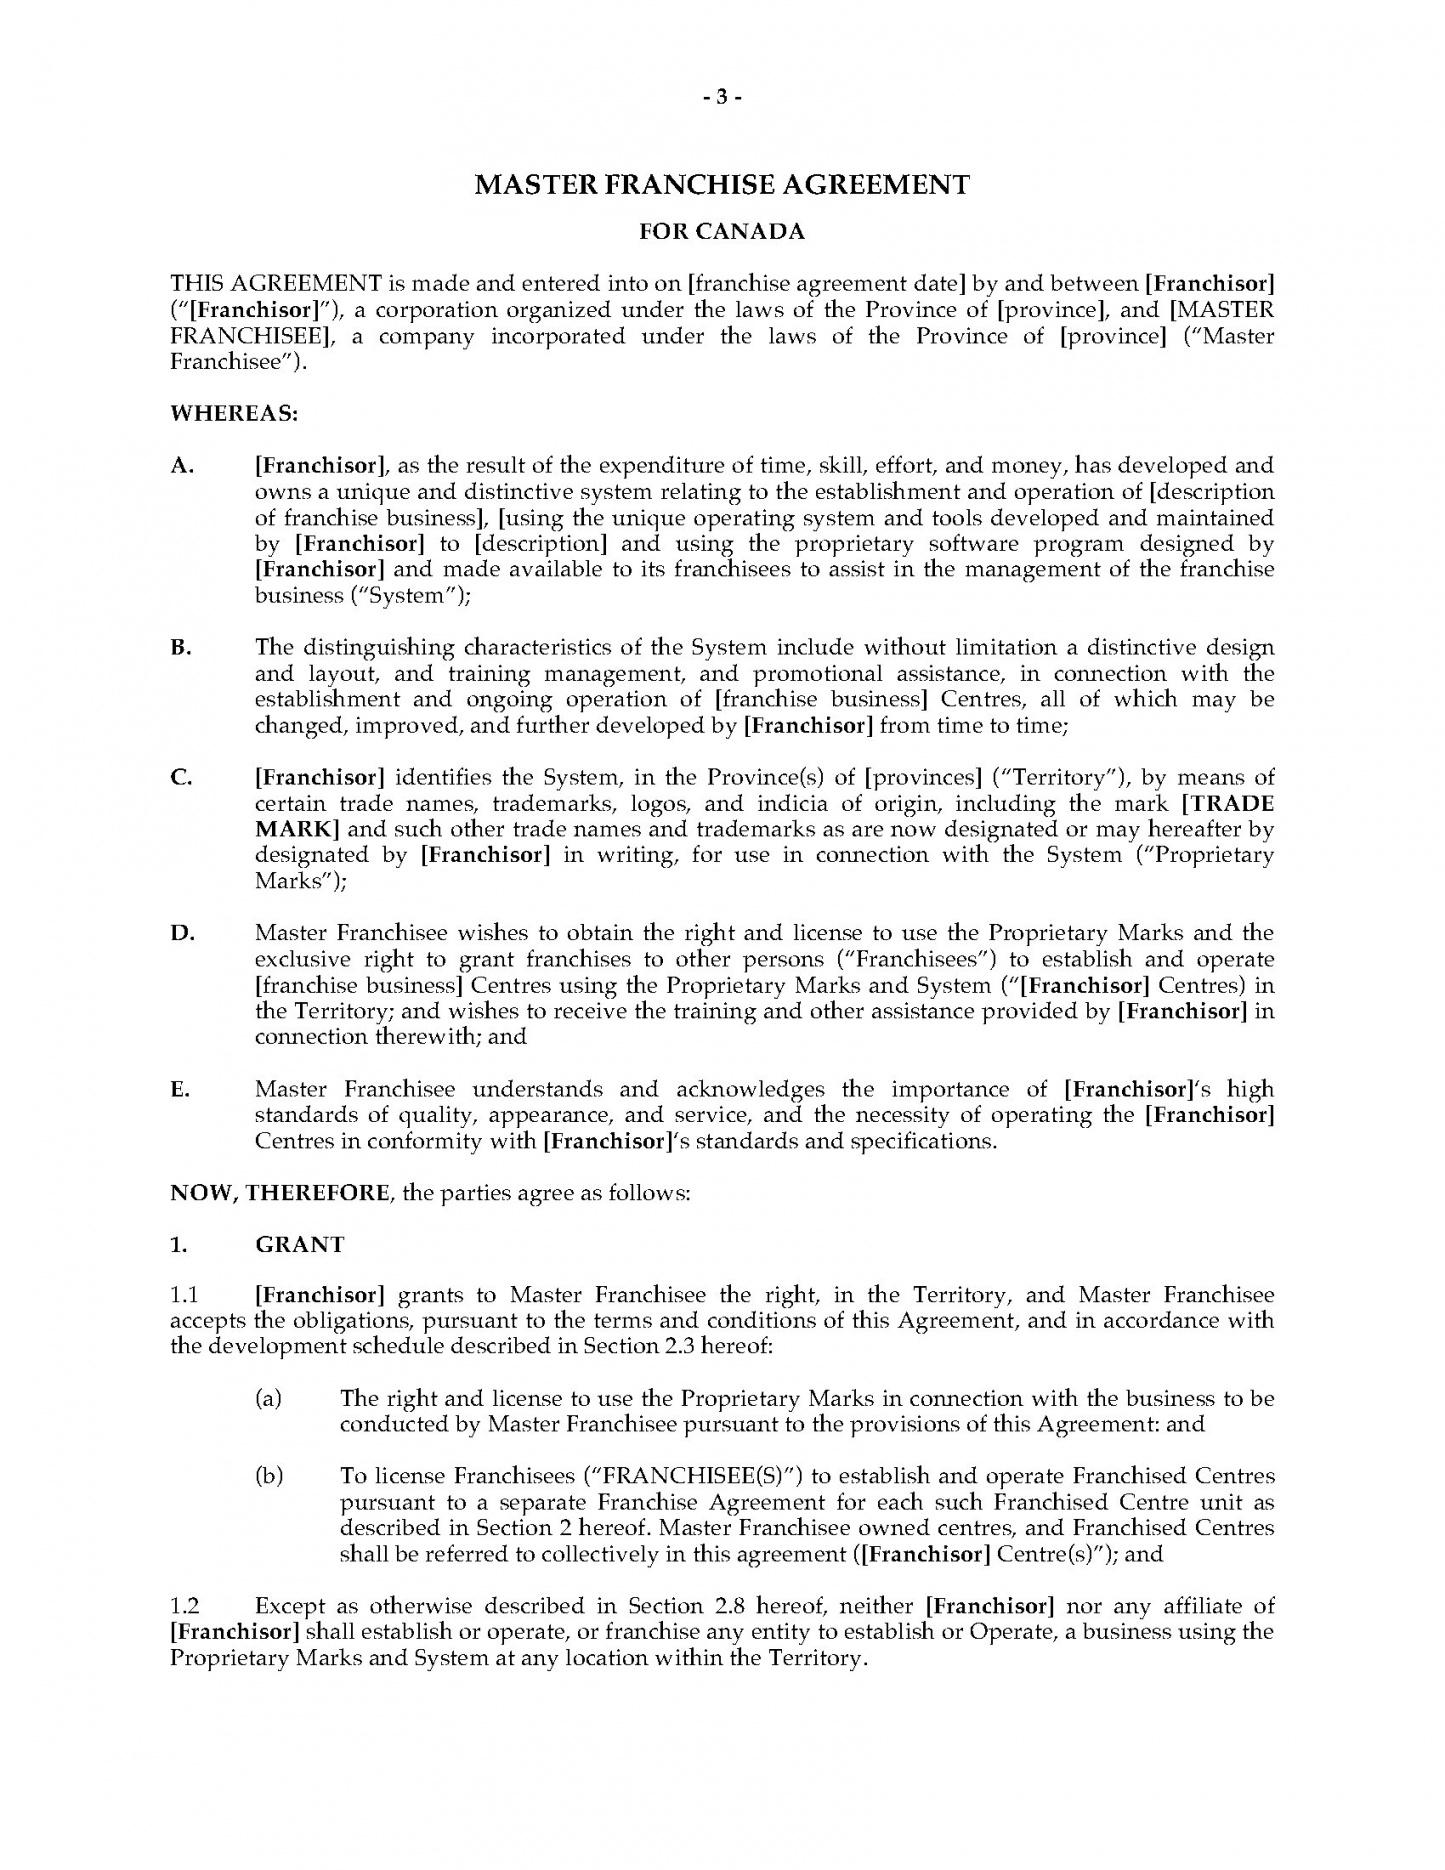 our canada master franchise agreement  legal forms and business franchise development agreement sample